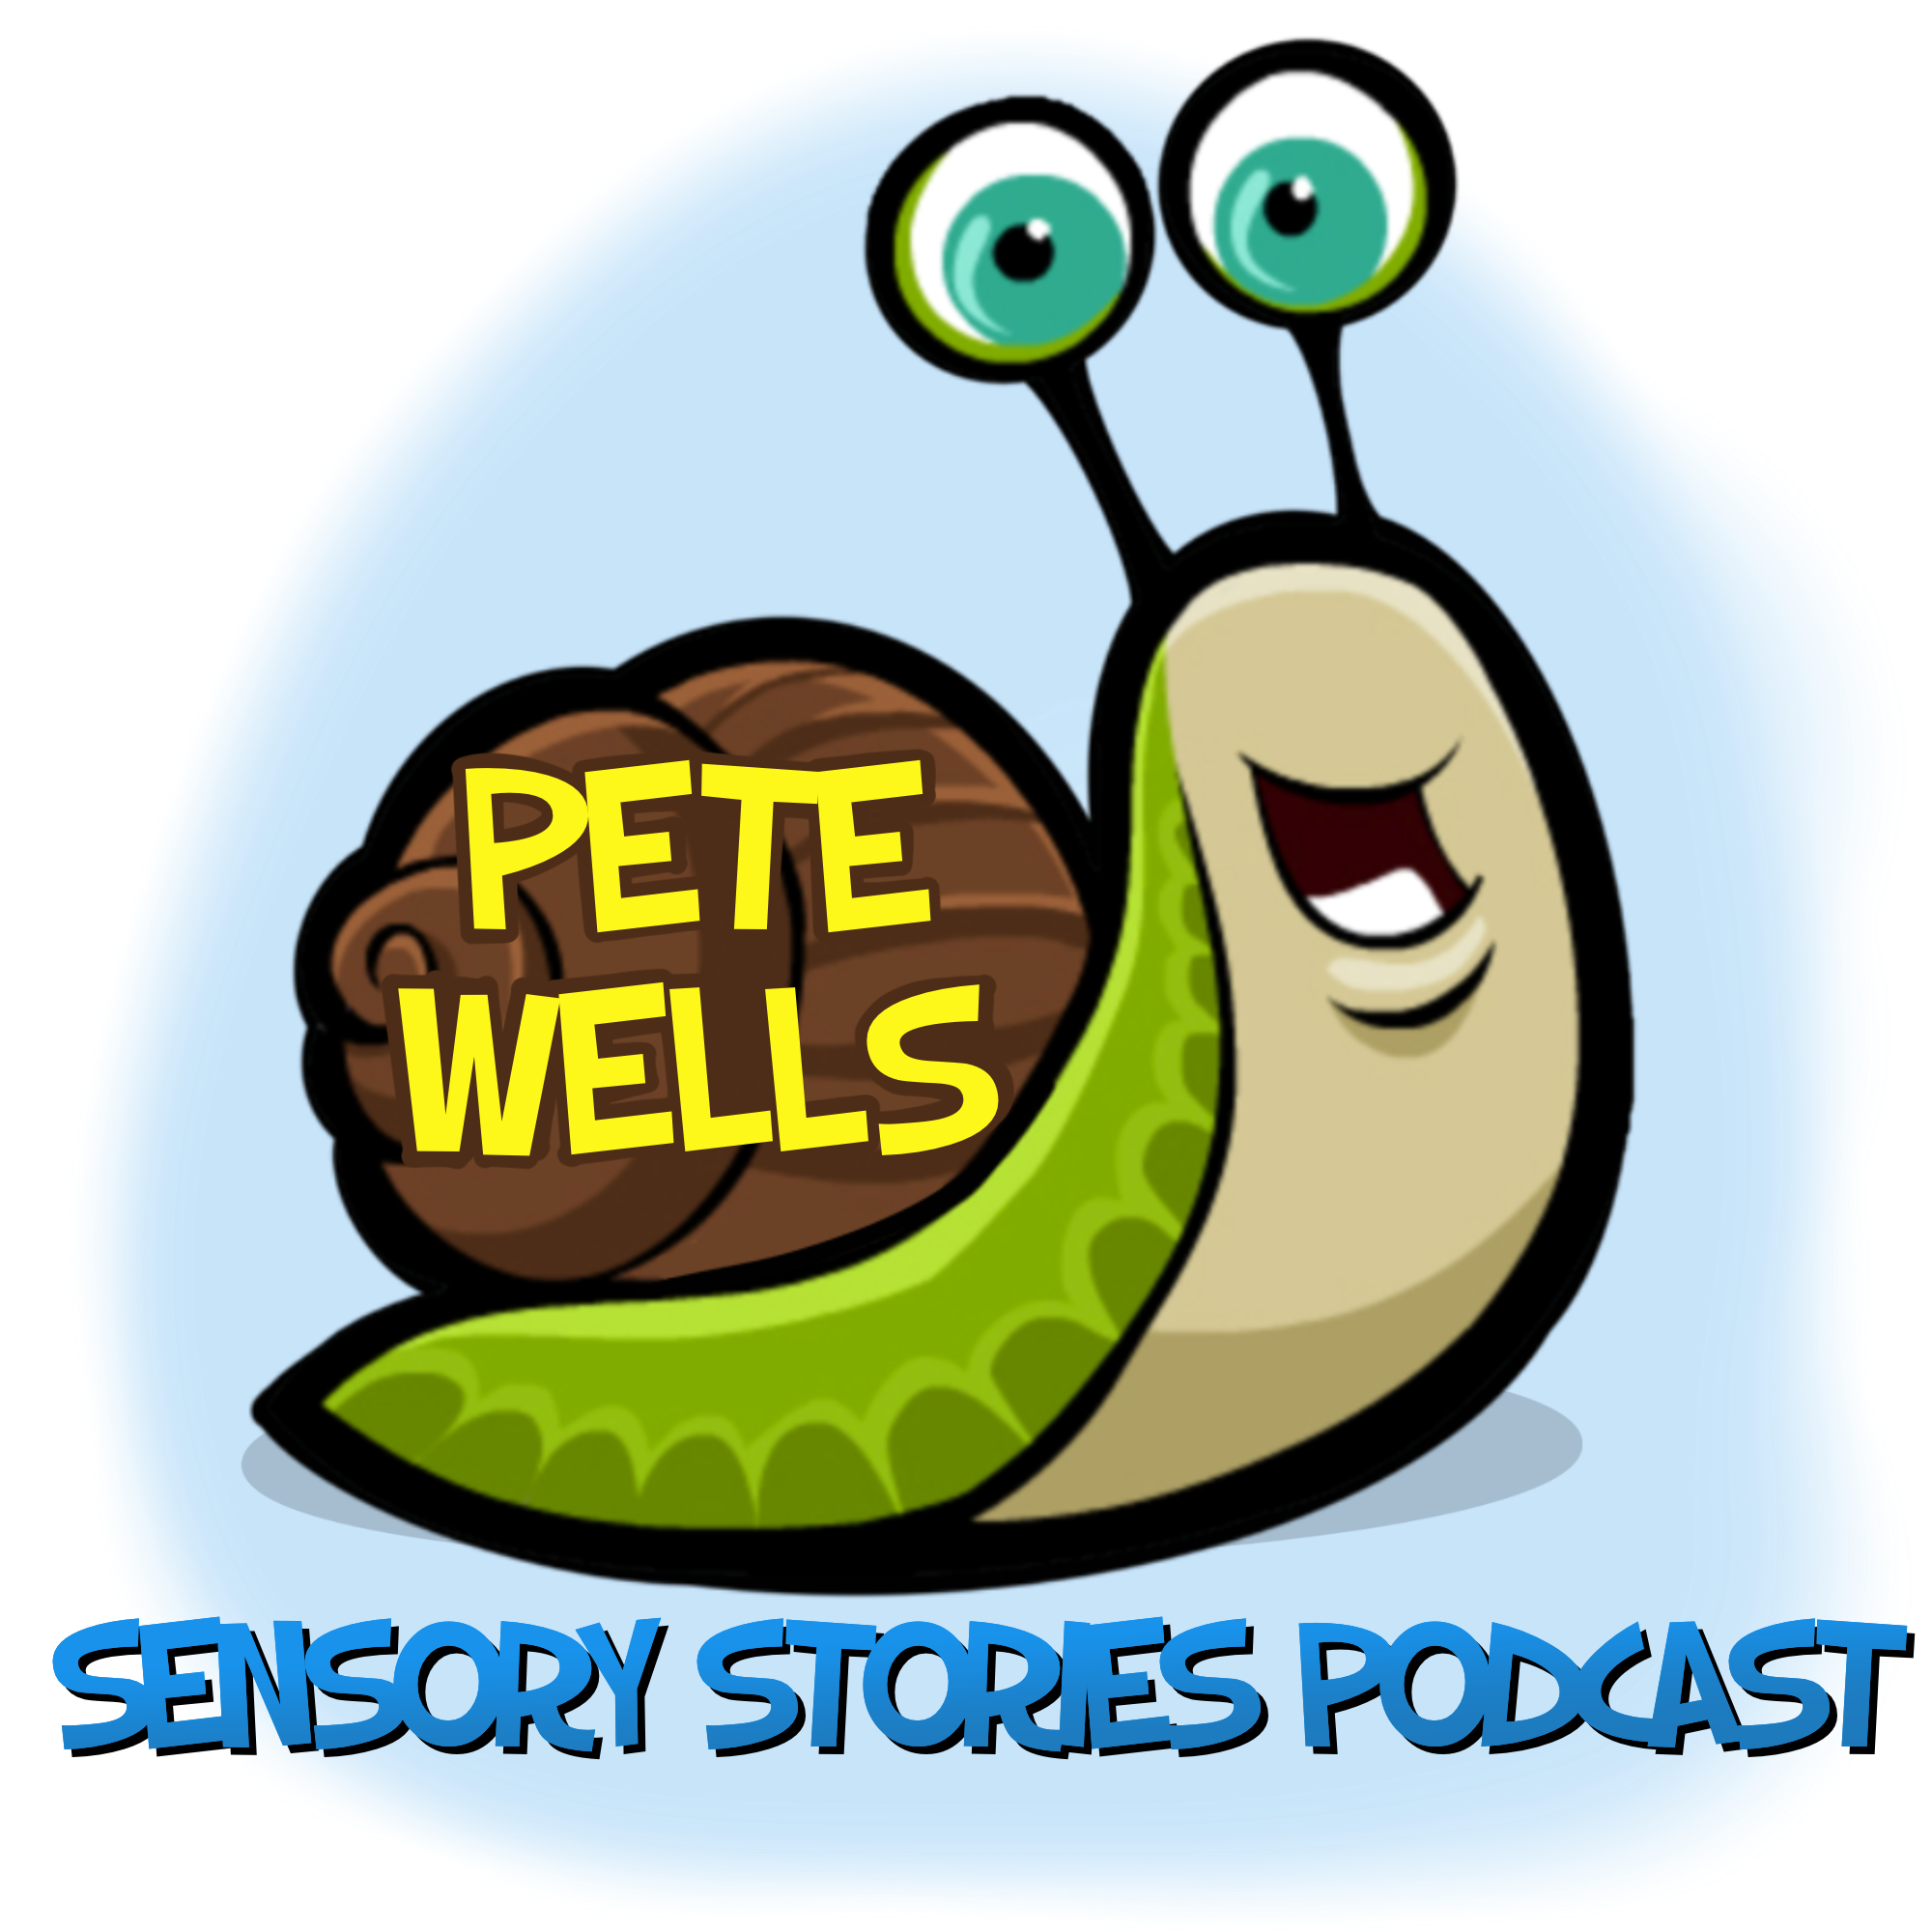 The Pete Wells Sensory Stories Podcast